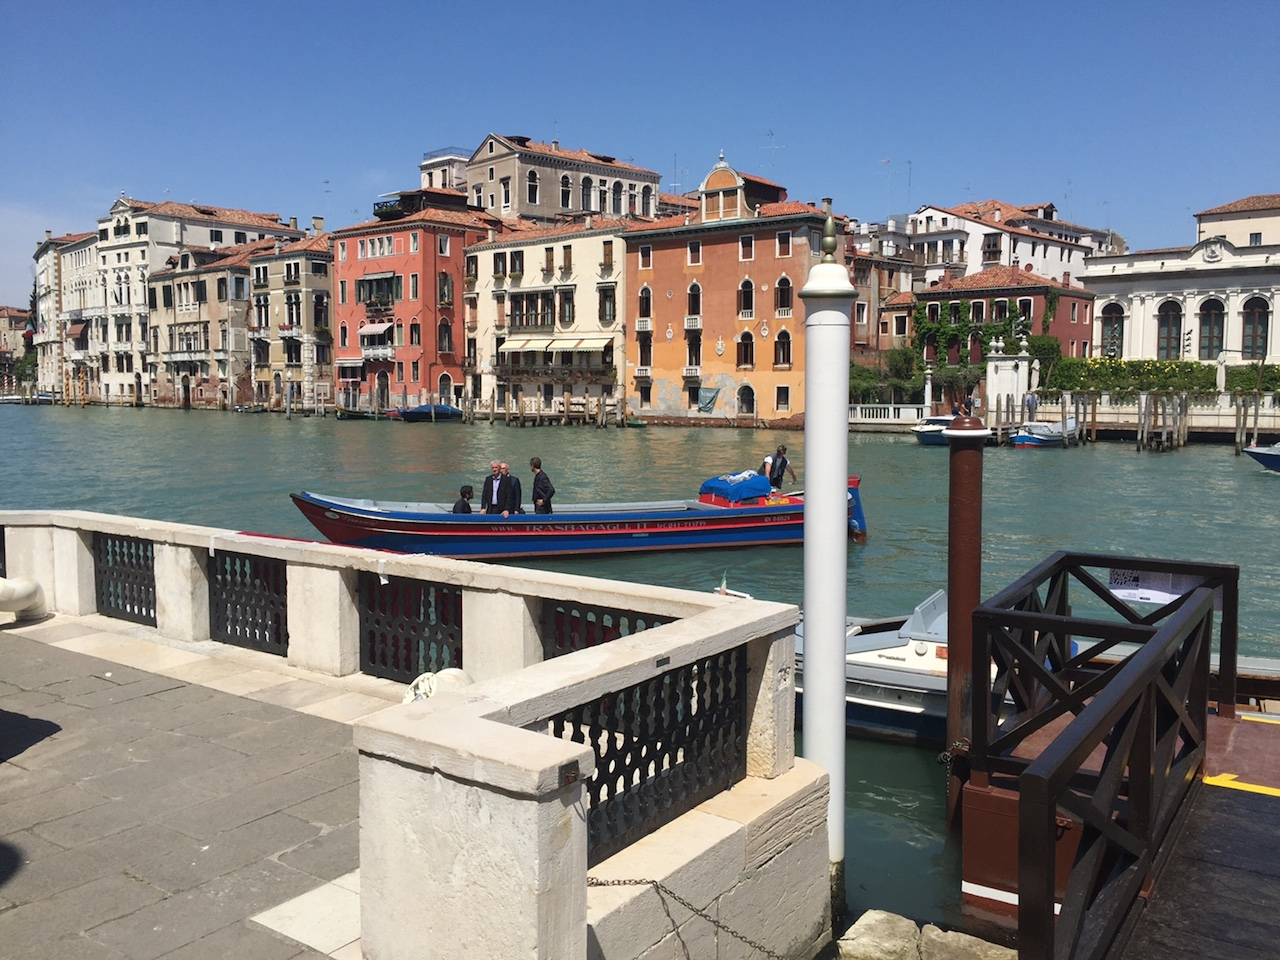 Visitors being turned away from the Peggy Guggenheim Collection's pier, which is currently occupied by protesters